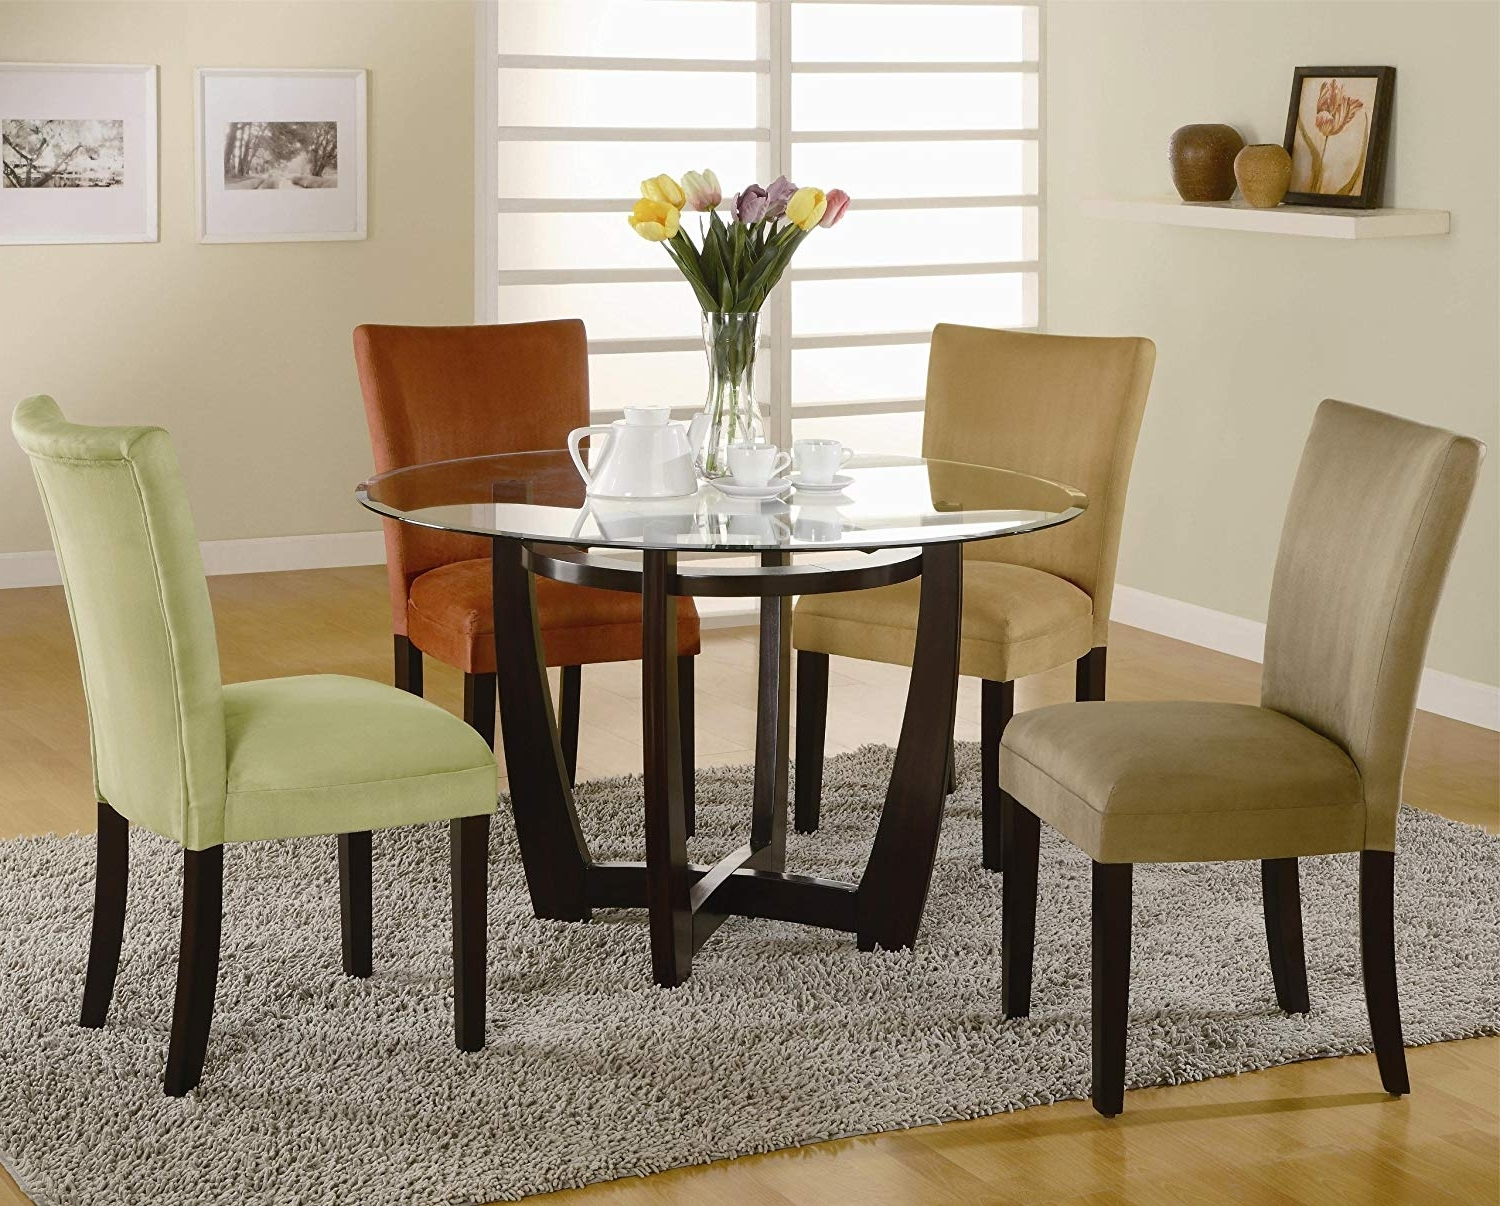 Preferred Macie 5 Piece Round Dining Sets Throughout Amazon – Round Dining Table With Glass Top Cappuccino Finish (View 22 of 25)